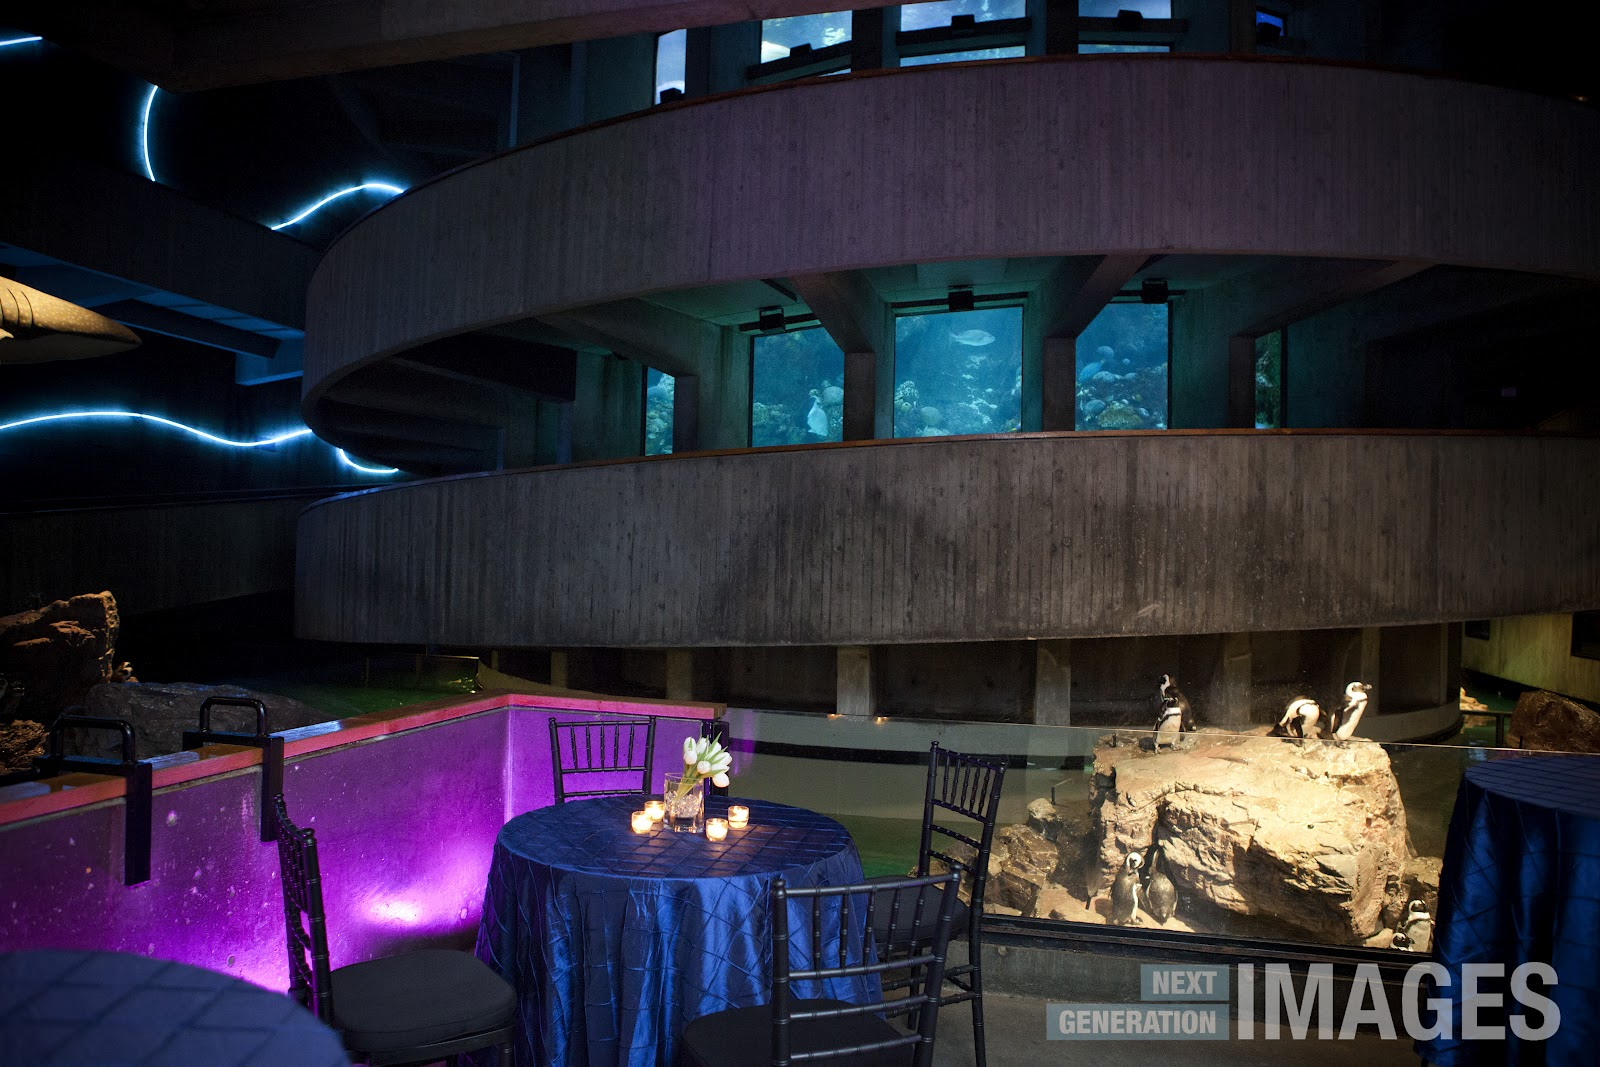 Next Generation Images Spotlight On The New England Aquarium